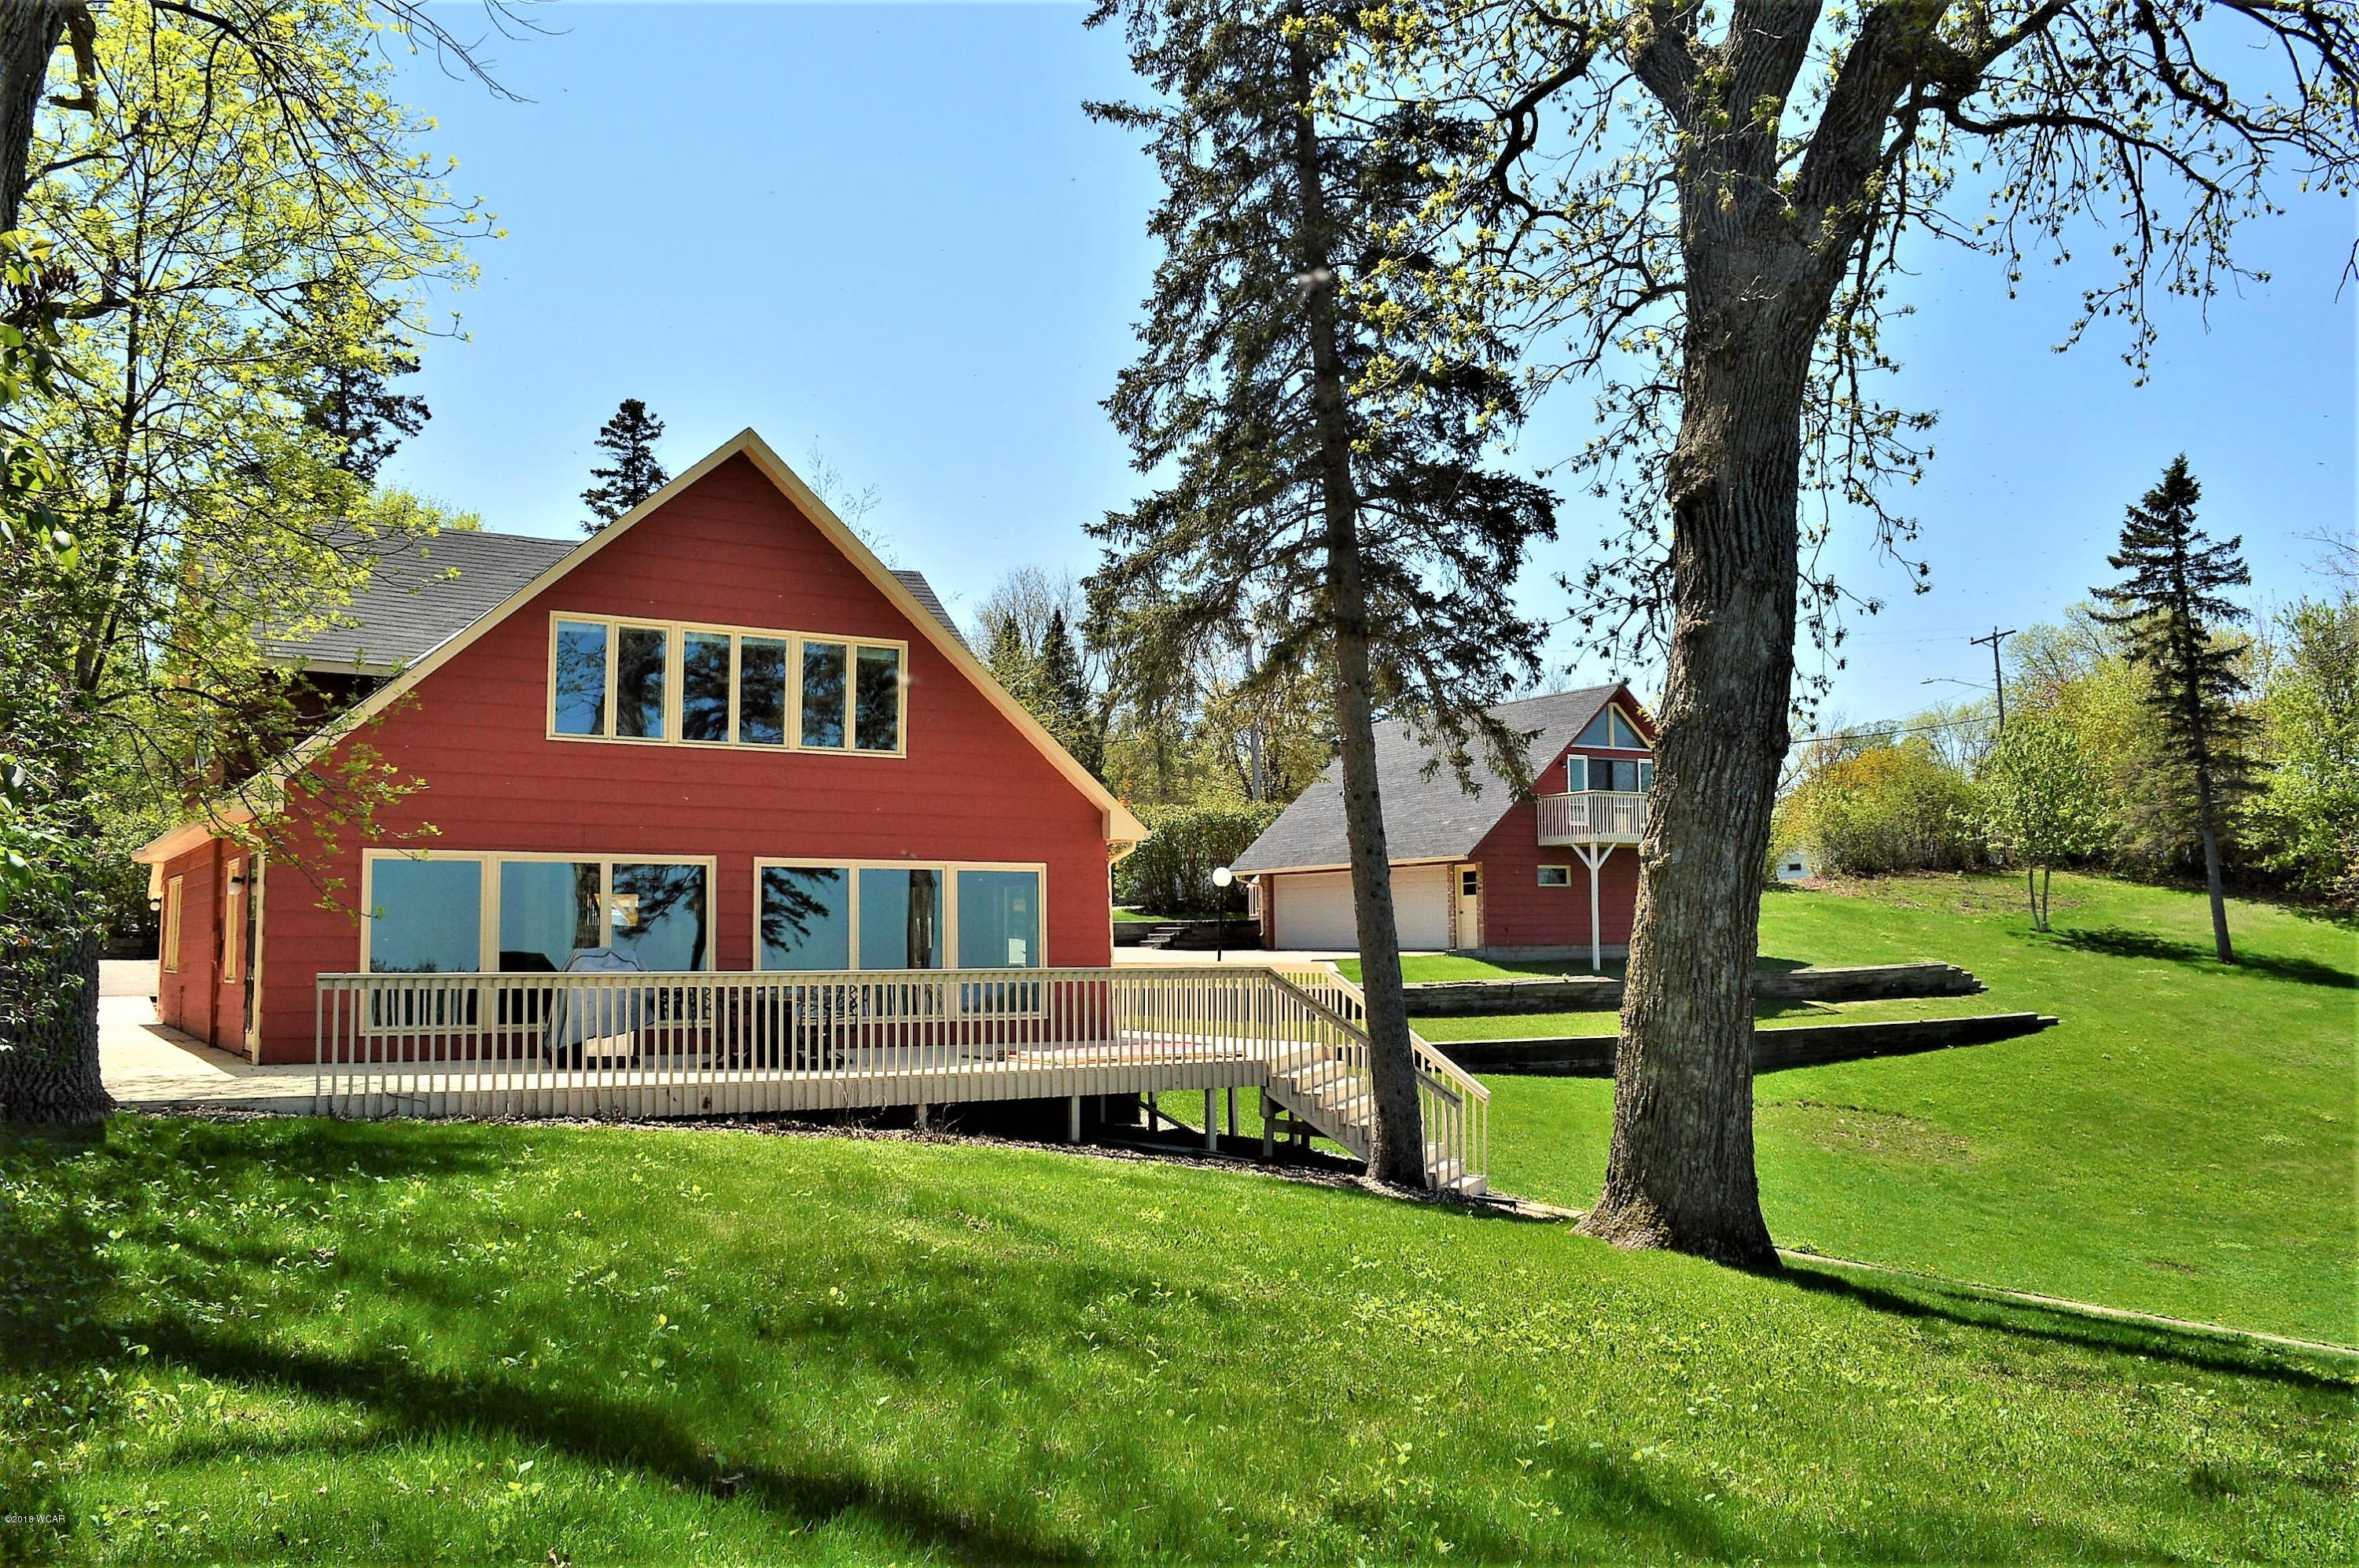 339,341 Lake Avenue,Spicer,5 Bedrooms Bedrooms,4 BathroomsBathrooms,Single Family,Lake Avenue,6033202